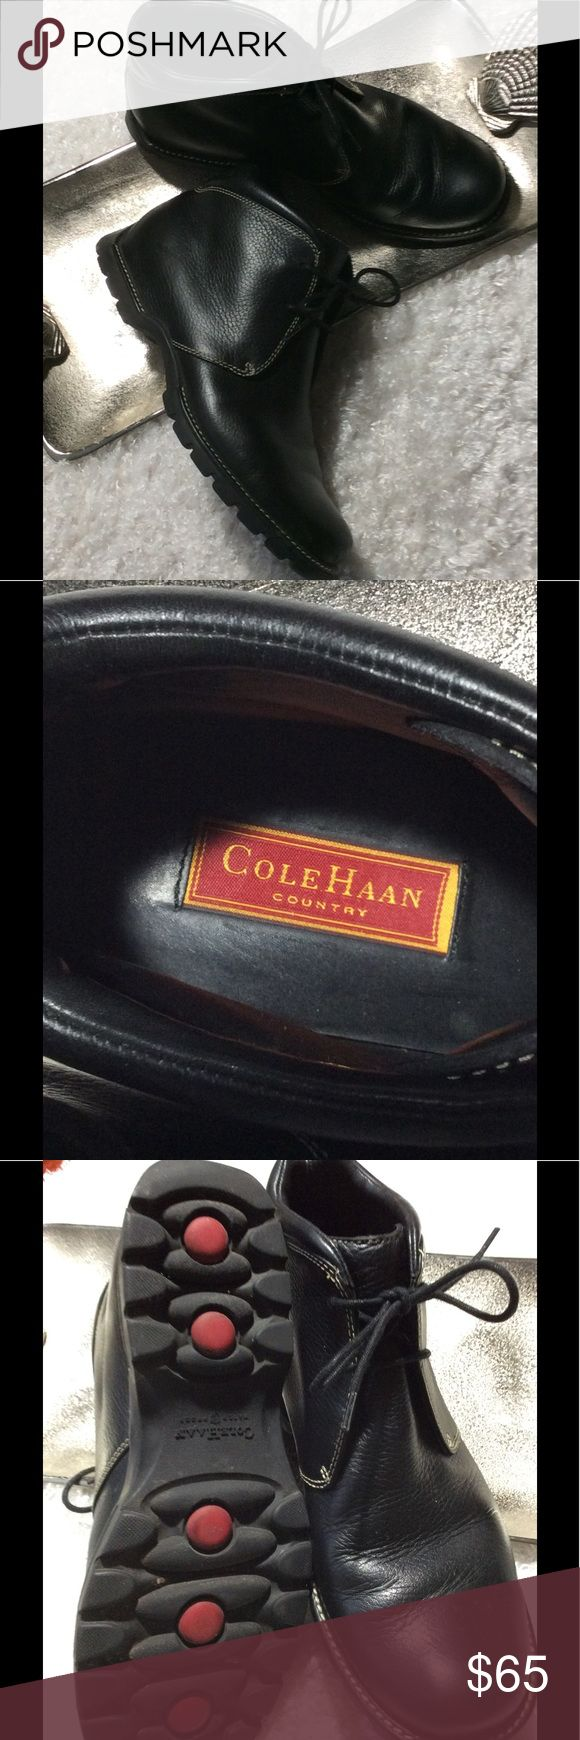 Cole Haan Country Ankle Boots Cole Haan Black Waterproof Ankle Boots. Cole Haan Shoes Boots